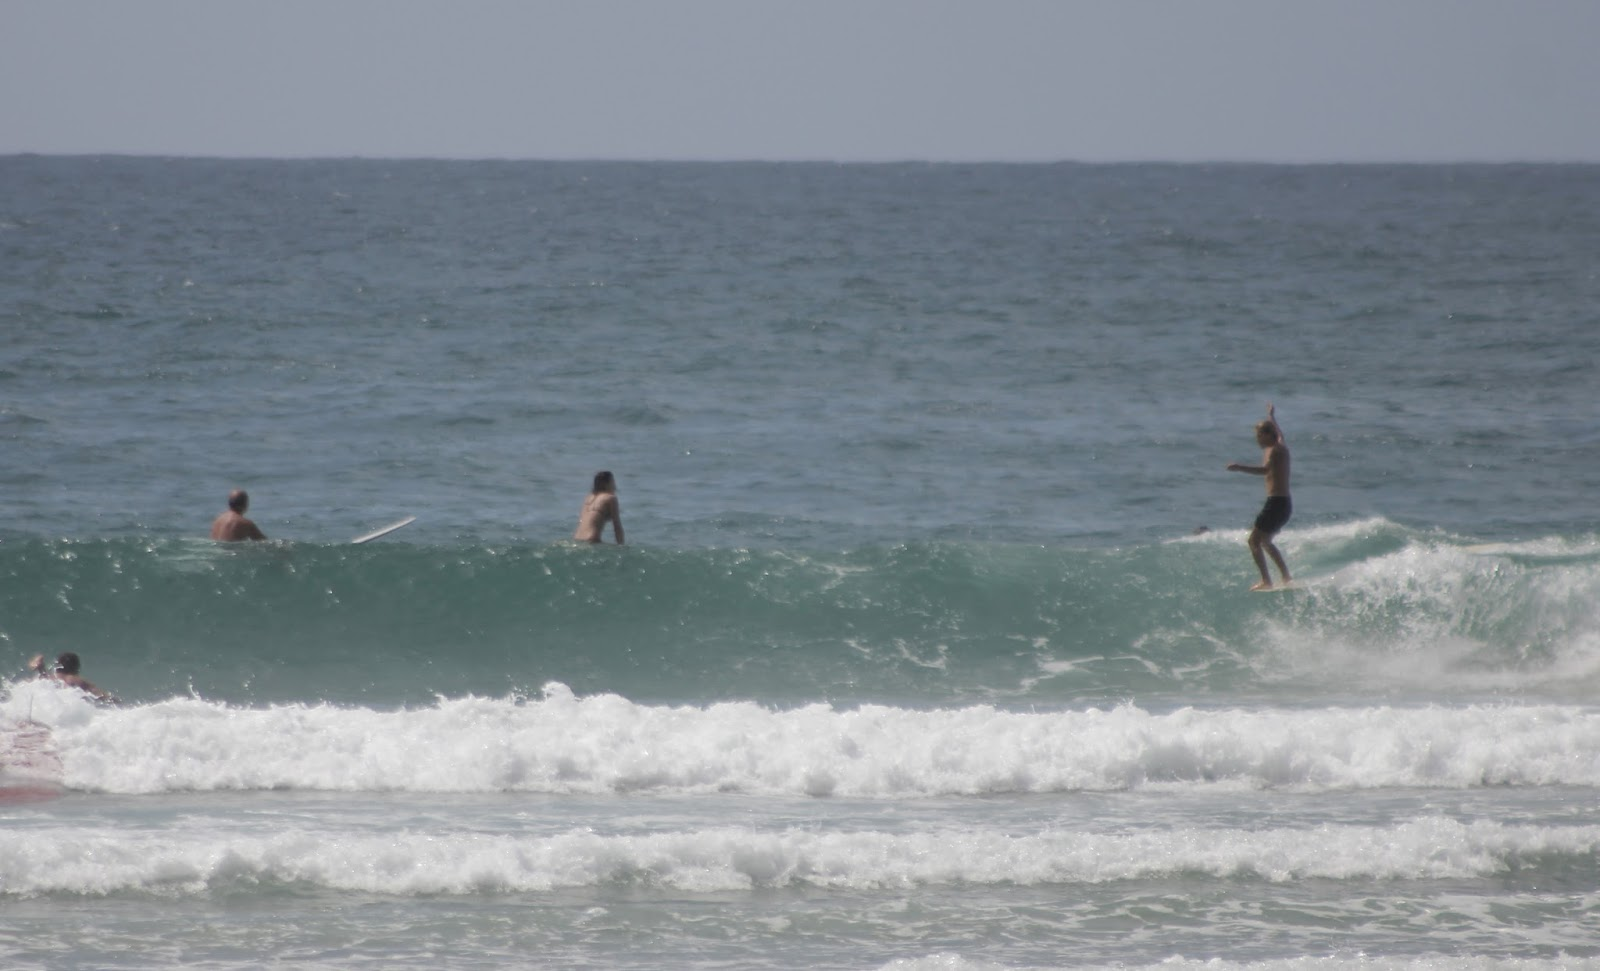 11-03-2016-australia-siebert-surfboards-09